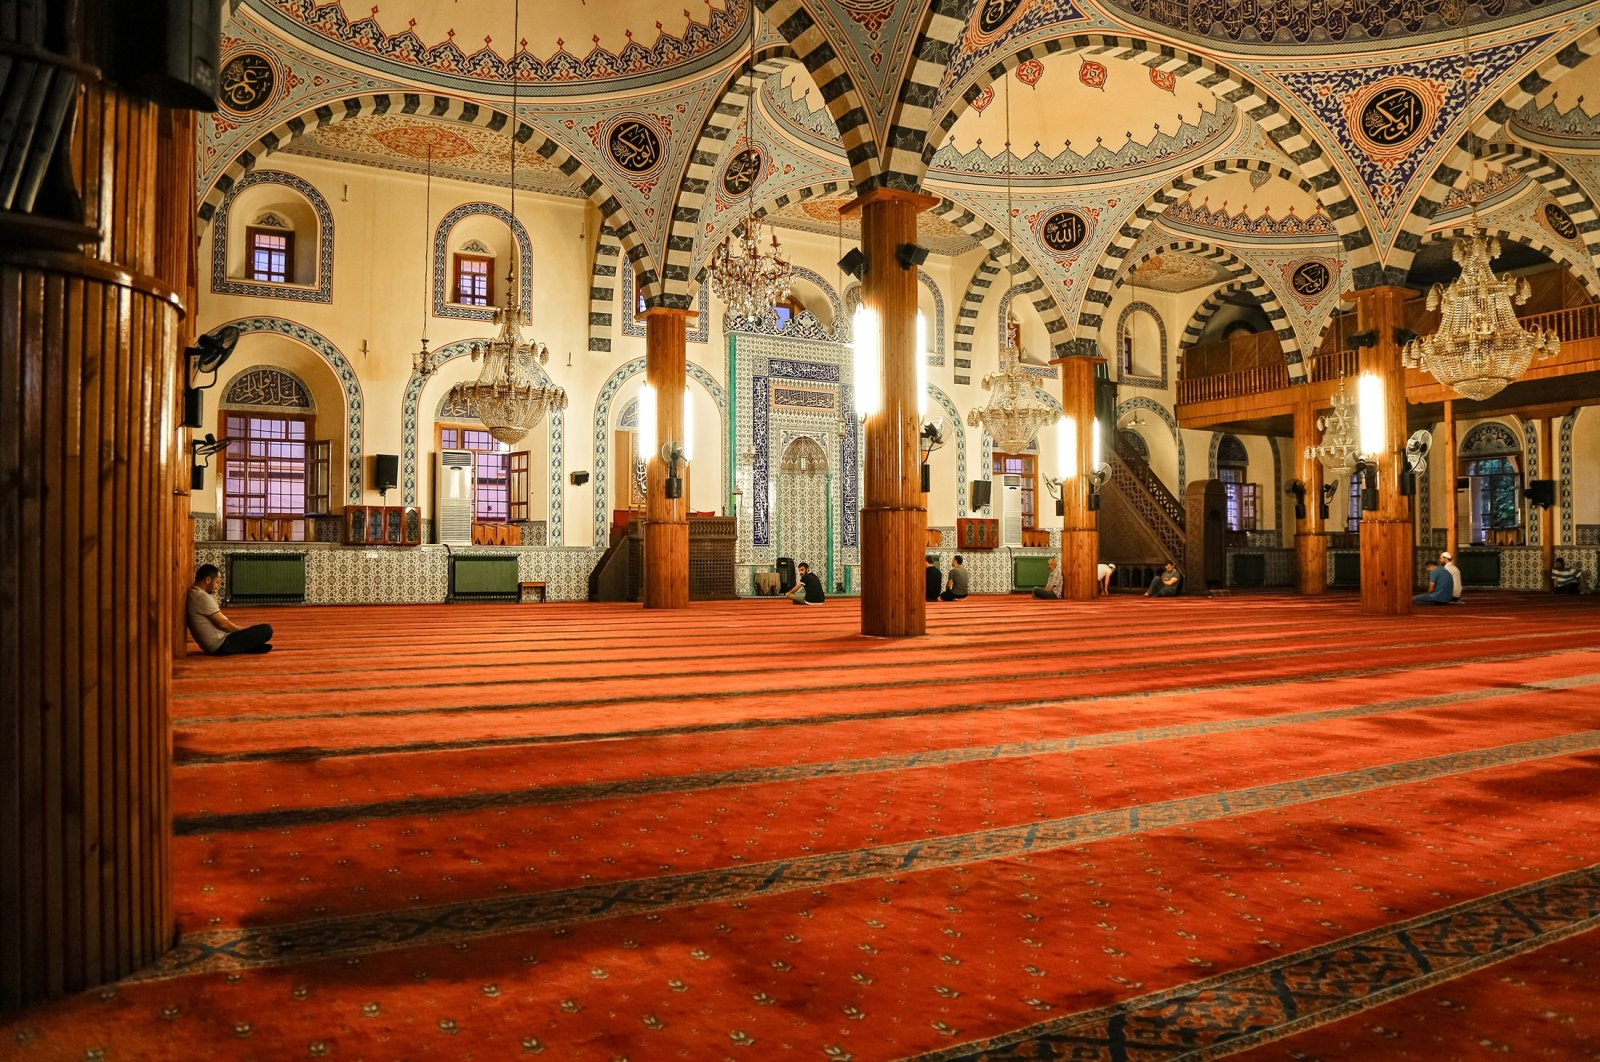 An interior view from the Kapu Mosque, Konya, central Turkey, July 2019. (Shutterstock Photo)